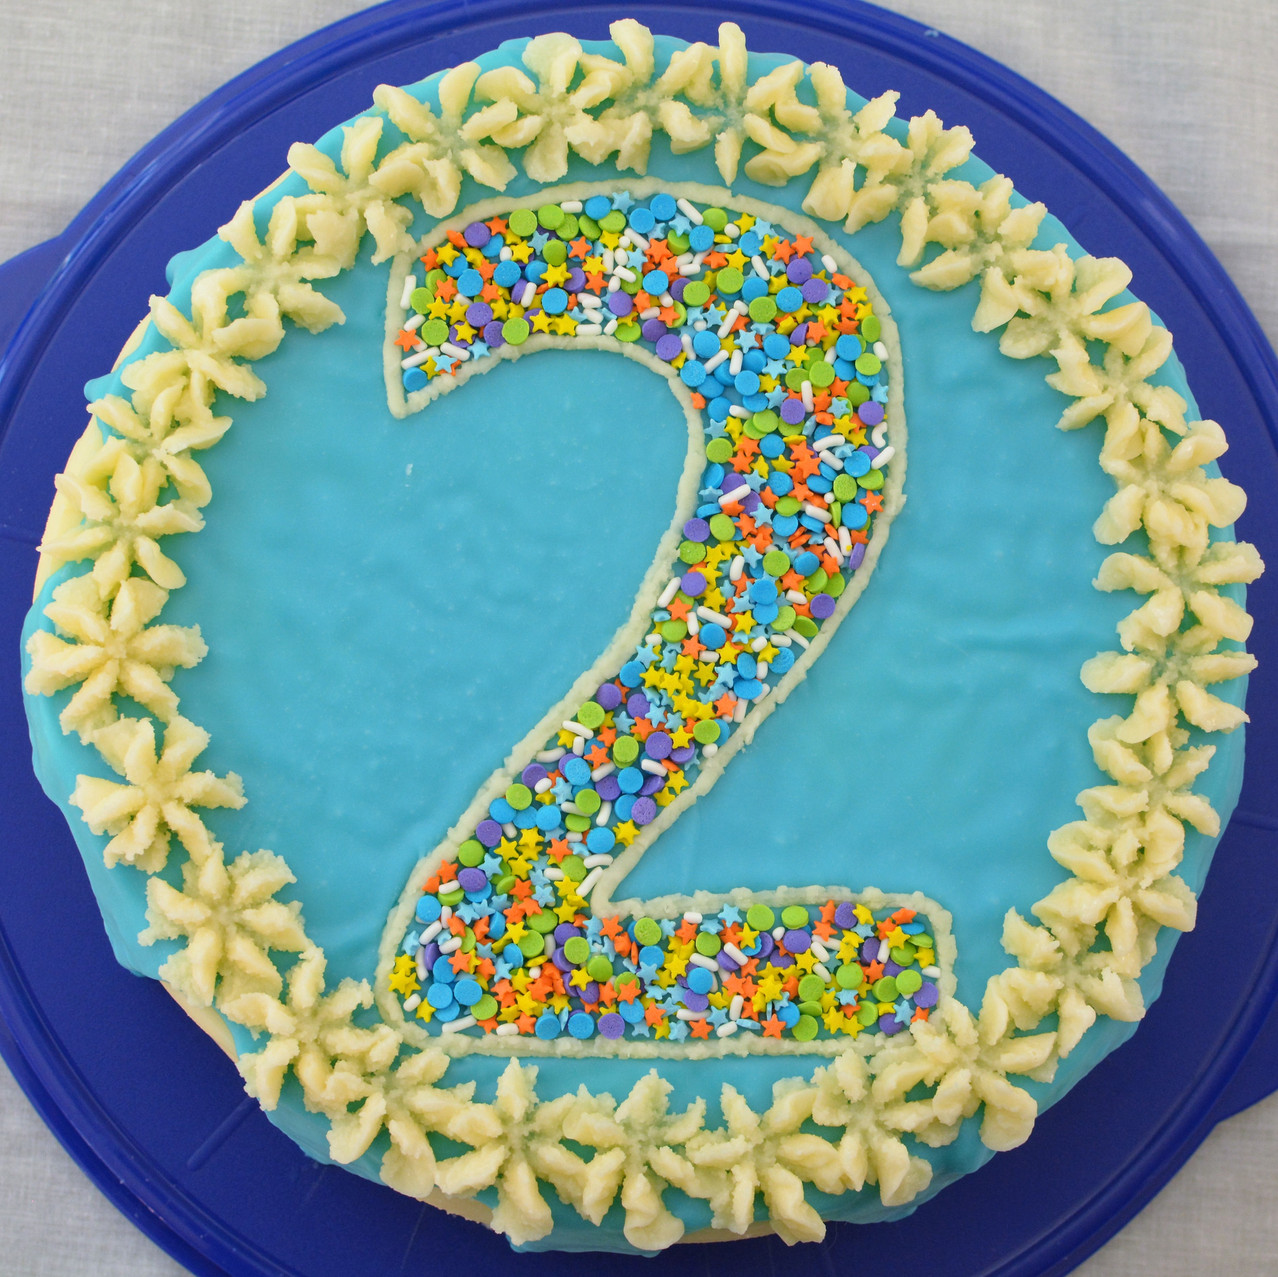 Decorated Double Layer Funfetti Cake with Buttercream Frosting